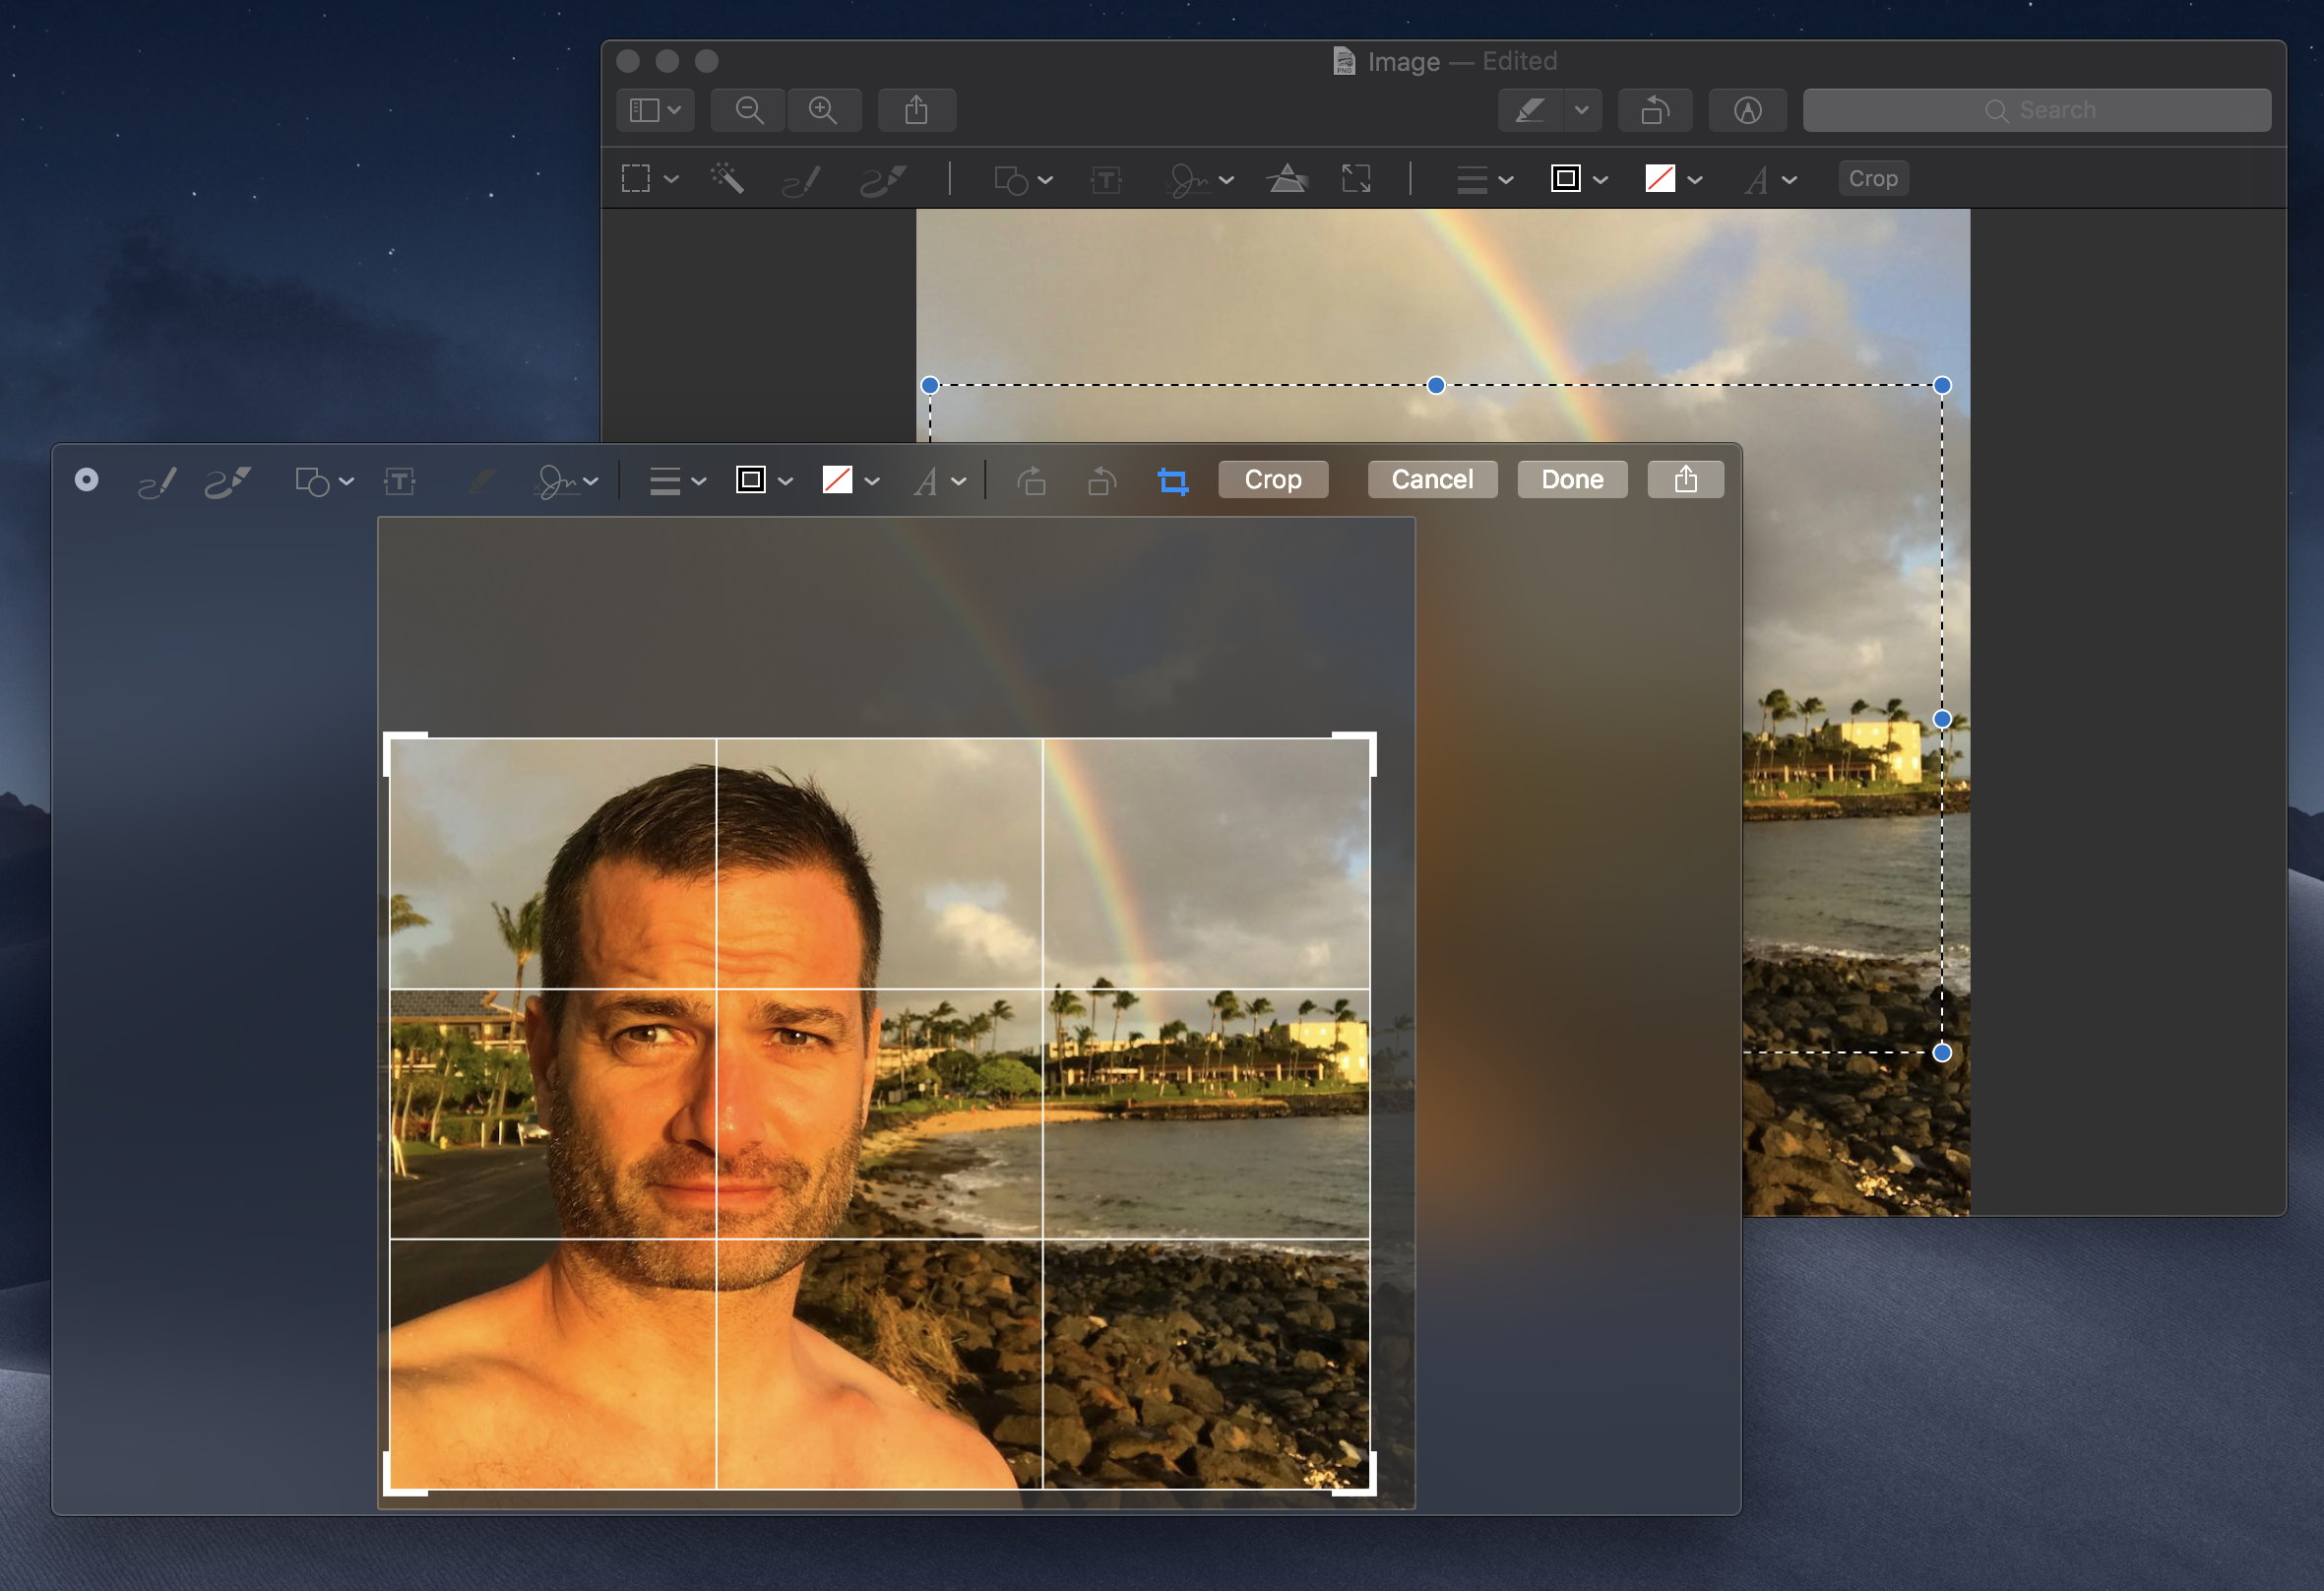 Cropping an image using Markup is oddly different in Preview and Quick Look.